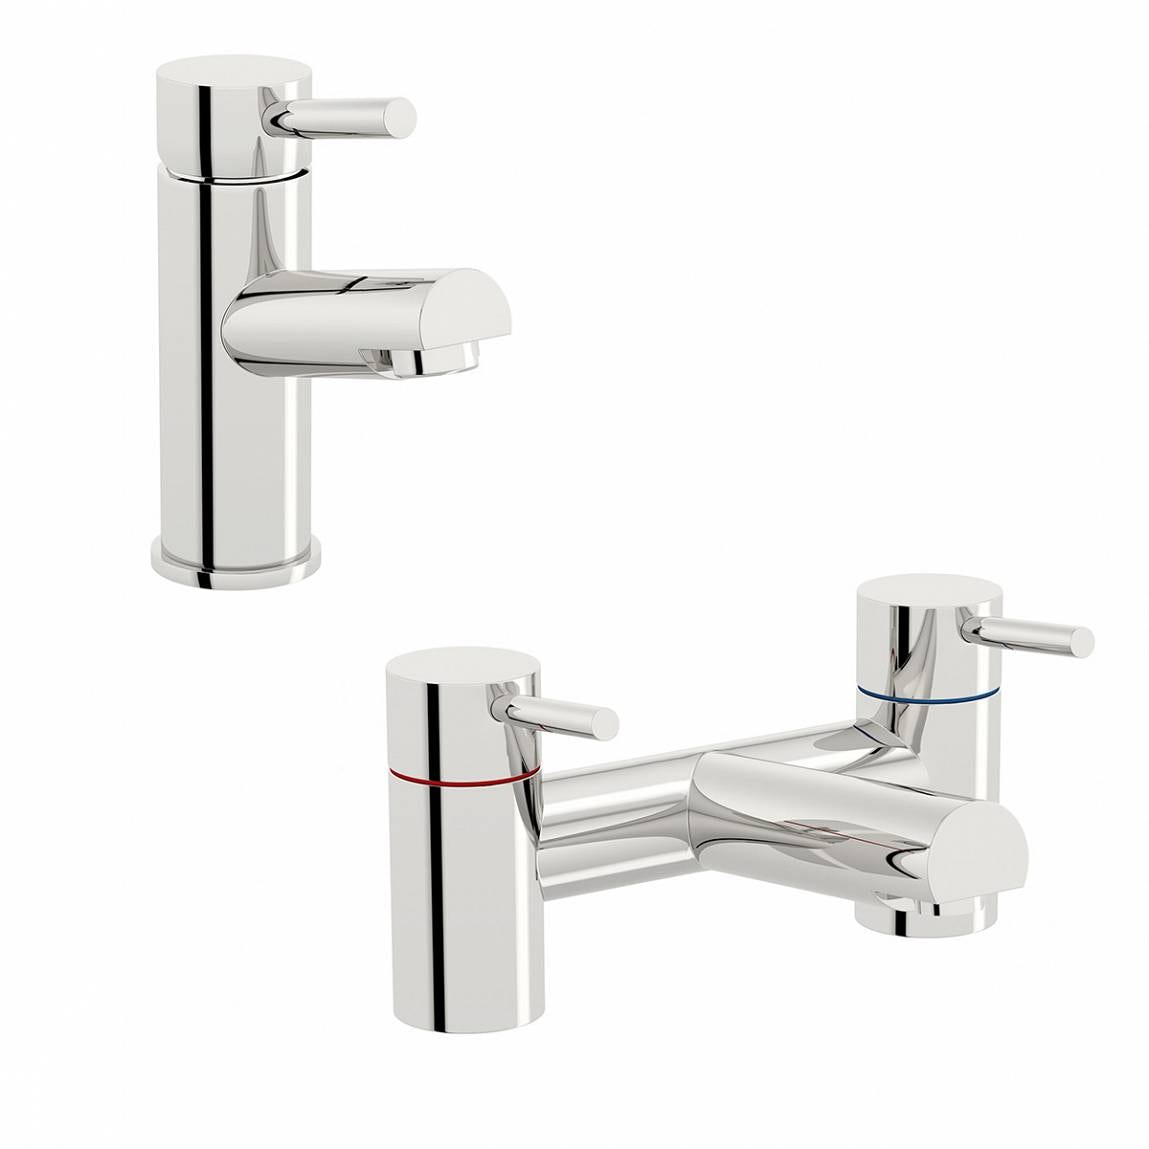 Orchard Wharfe basin and bath mixer tap pack